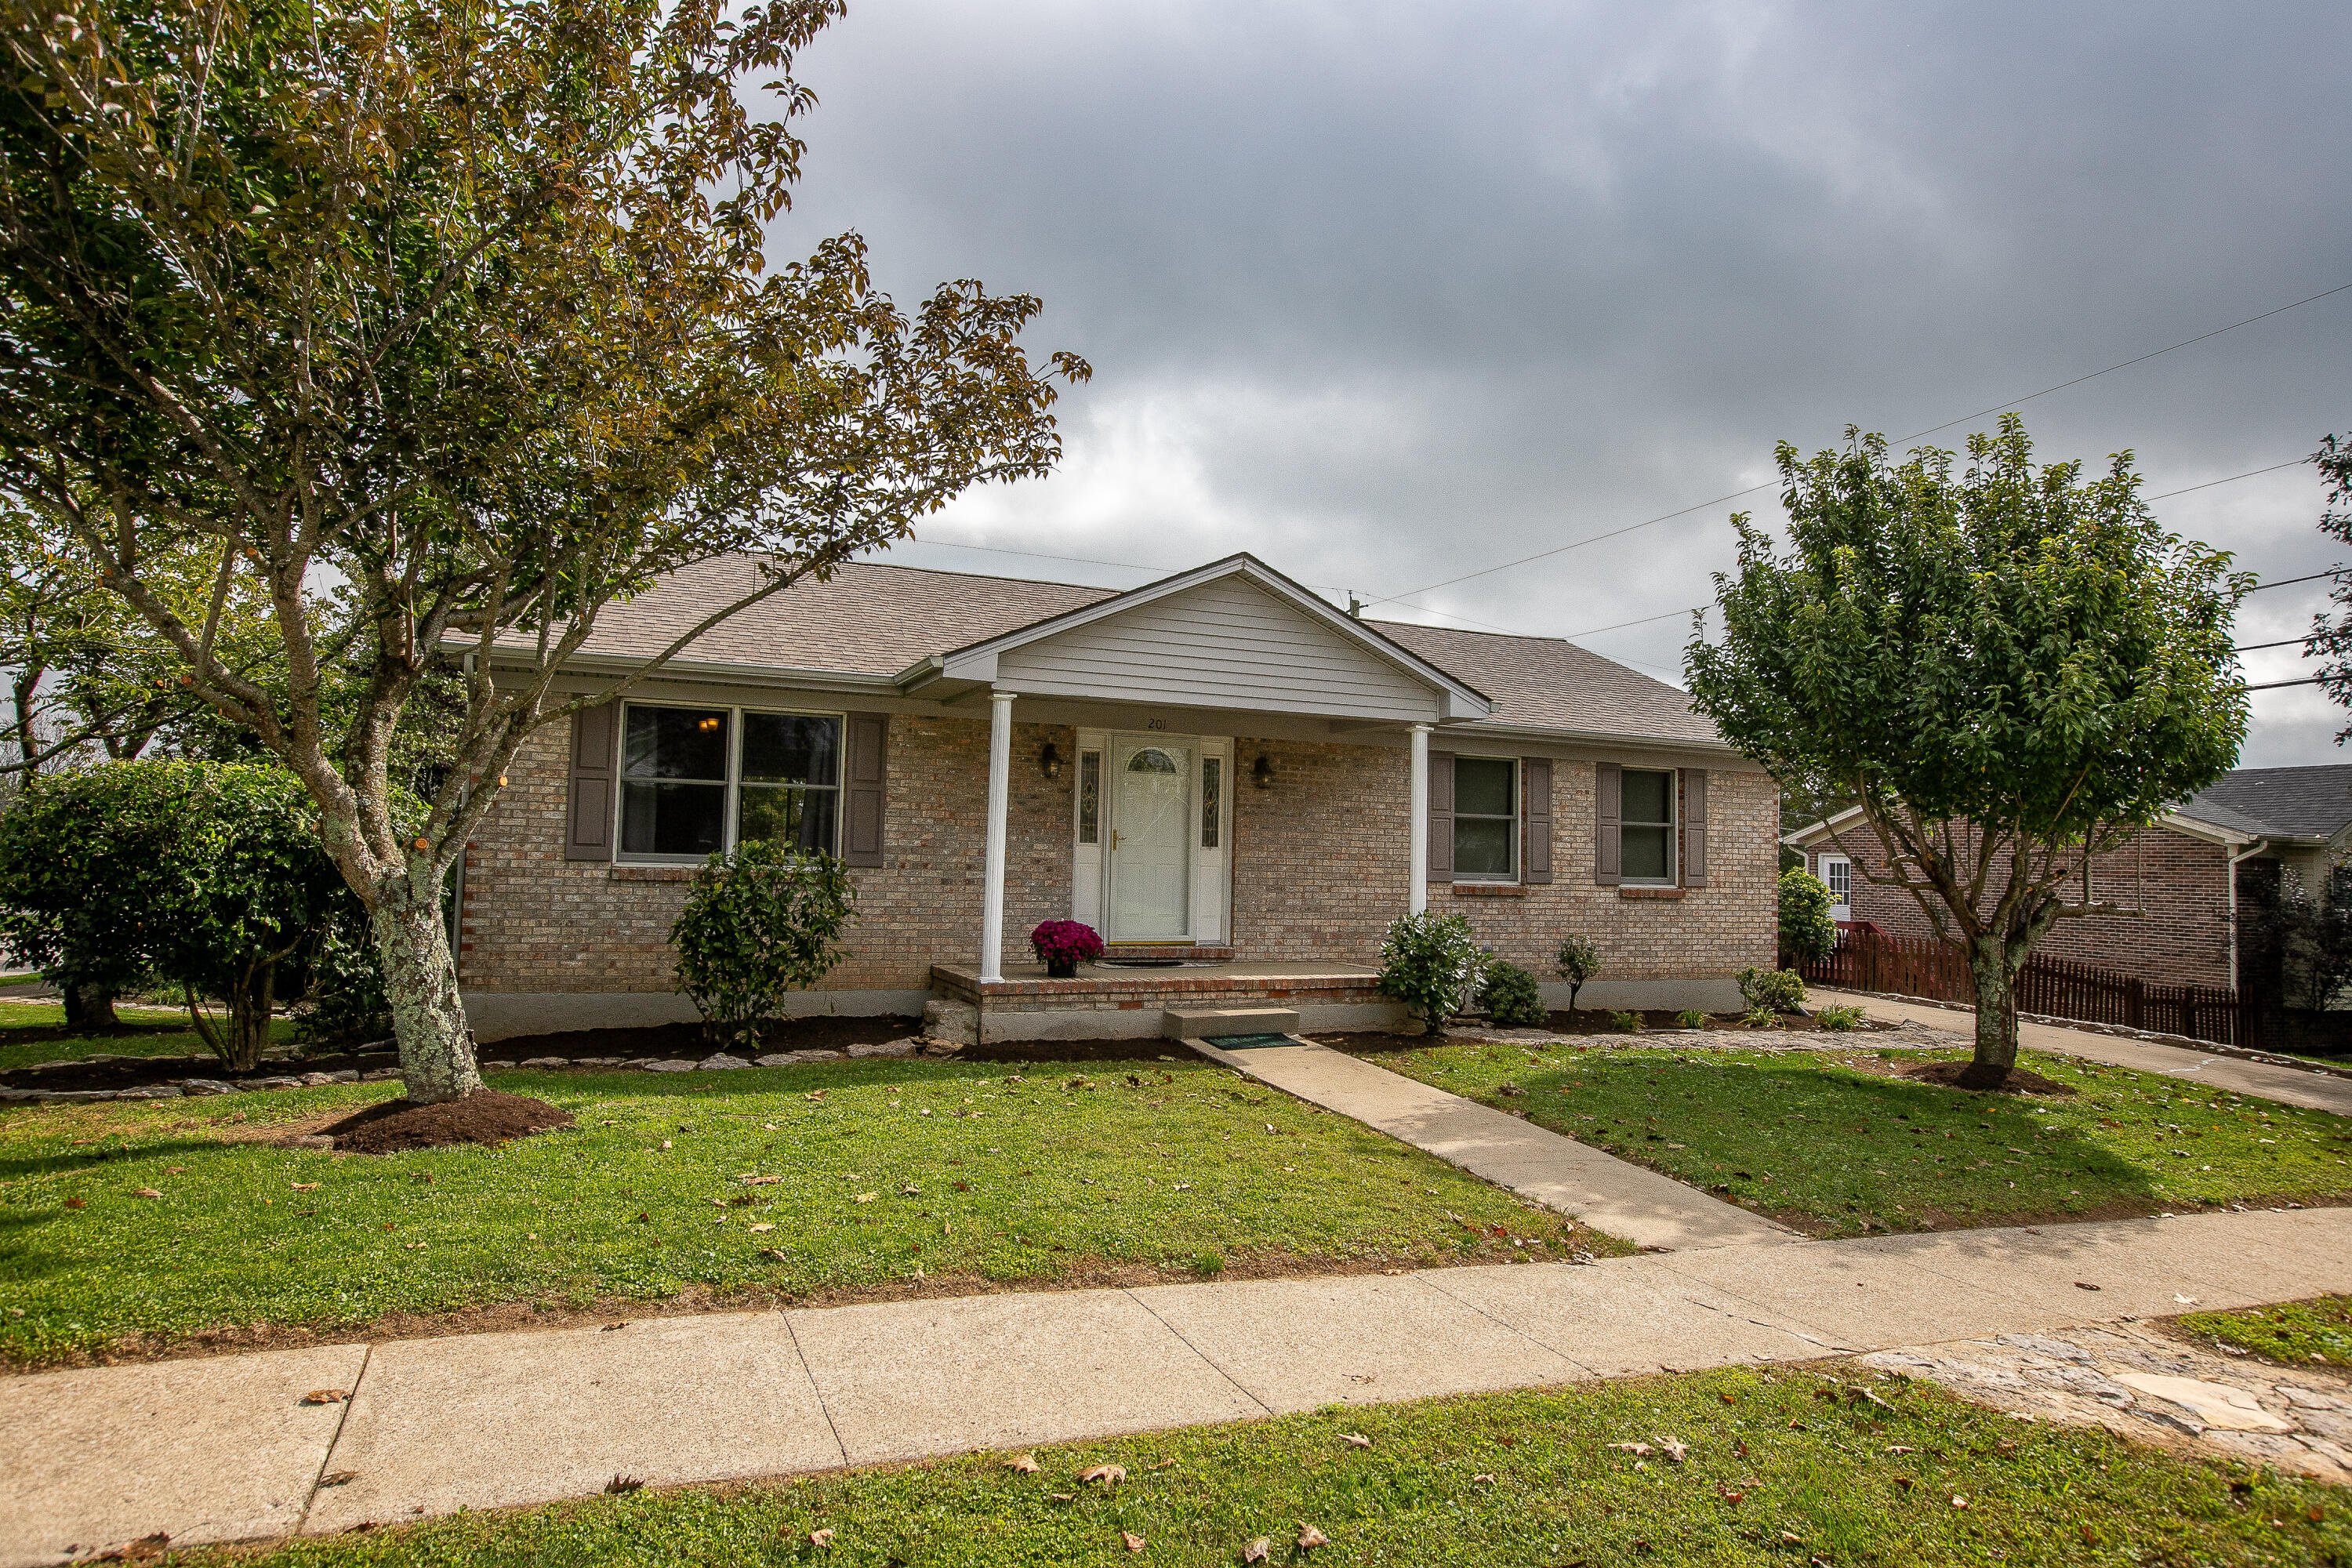 201 Bohicket Road, Wilmore, KY 40390